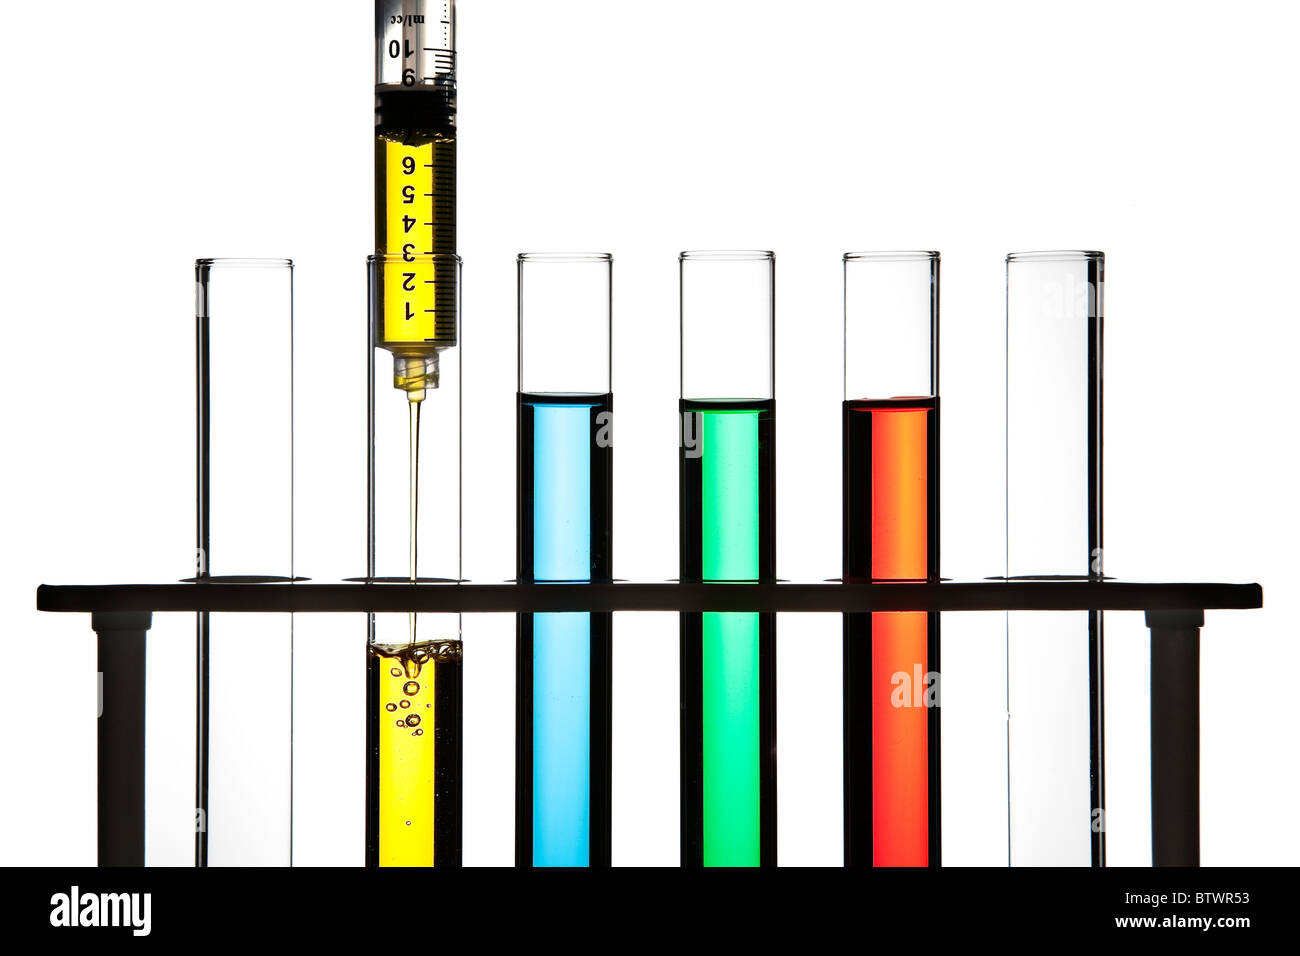 Row of test tubes filled with colored fluid, syringe filling one test tube. - Stock Image